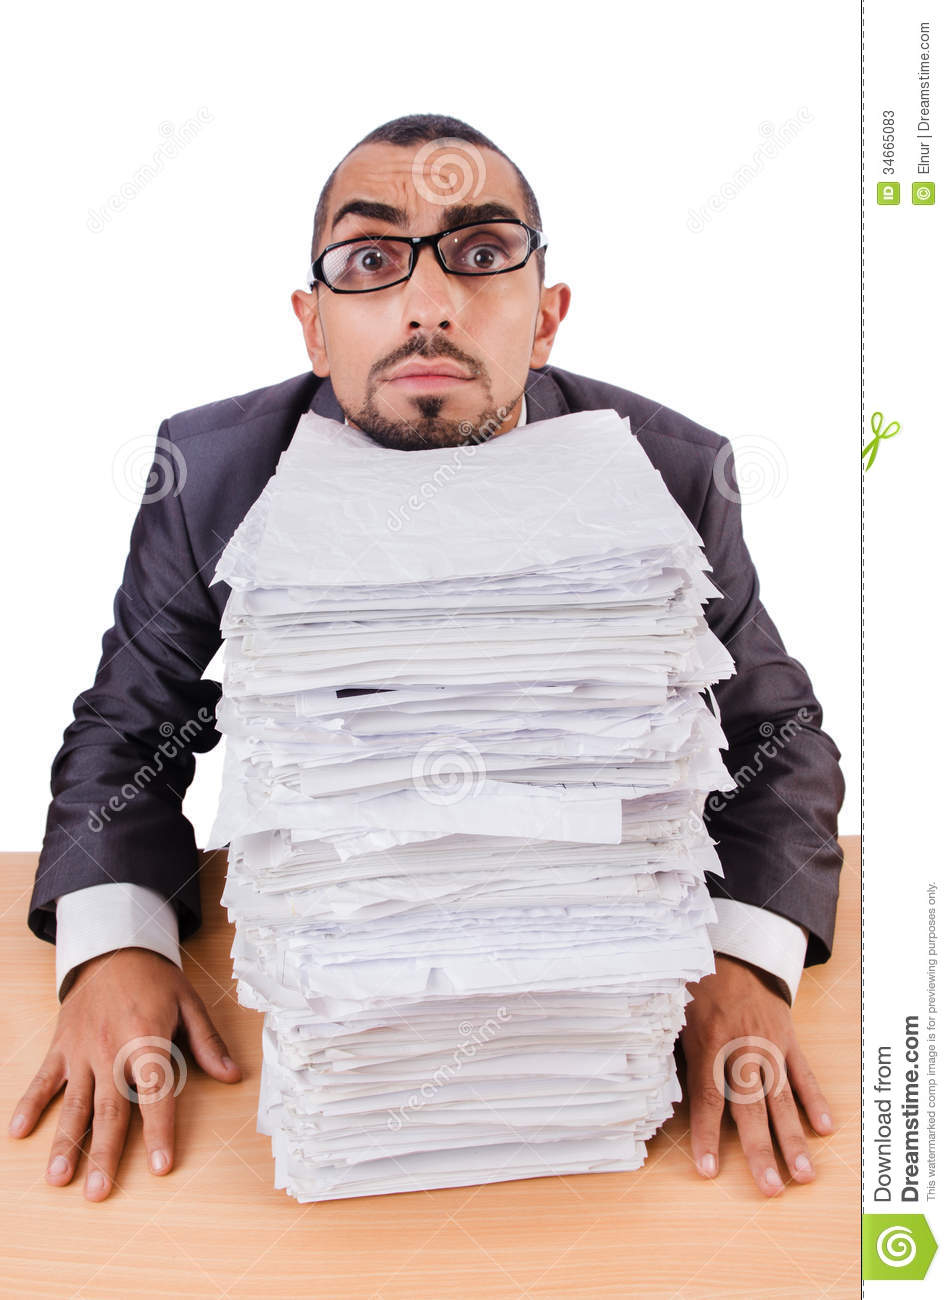 man too much work stock photos image  man too much work